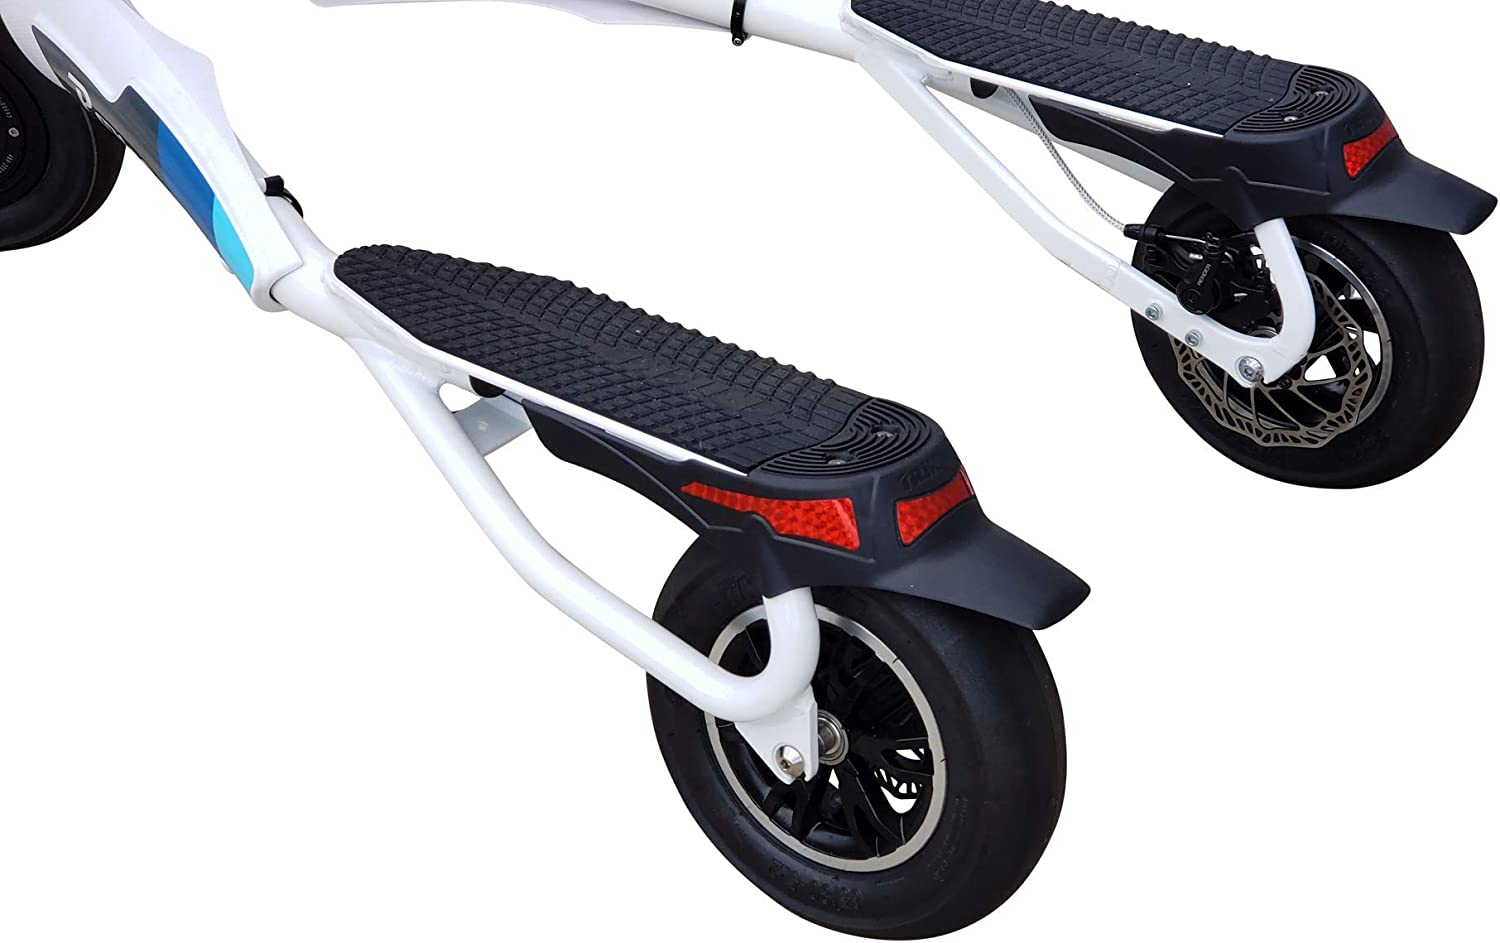 Amazon.com: trikke 48 V Deluxe Electric Scooter: Sports ...